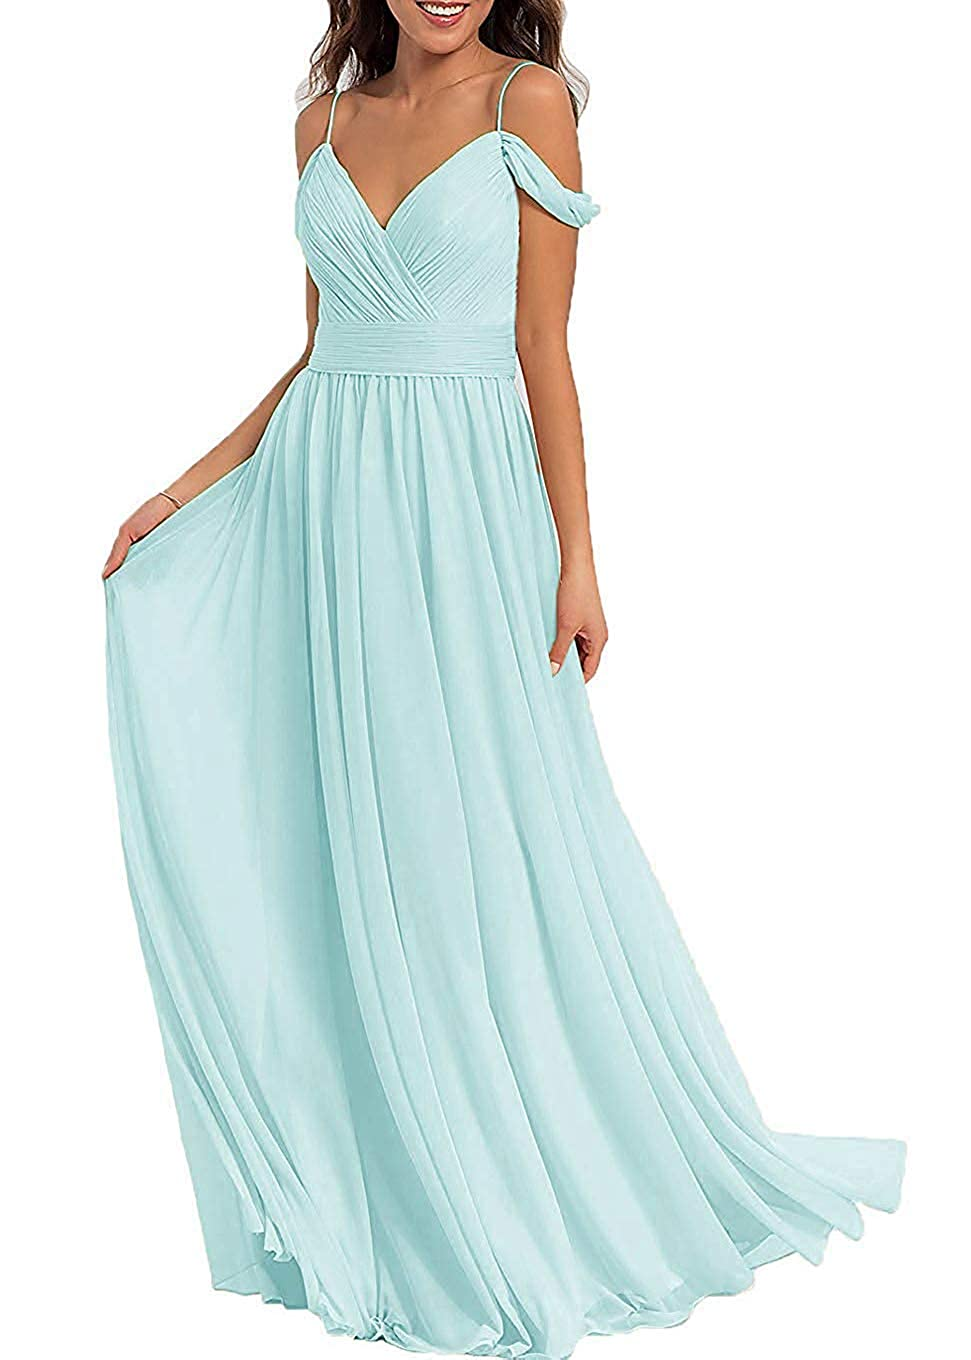 bluee Glass Women's V Neck Cold Shoulder Bridesmaid Dress Long Prom Gown Party Maxi Skirt